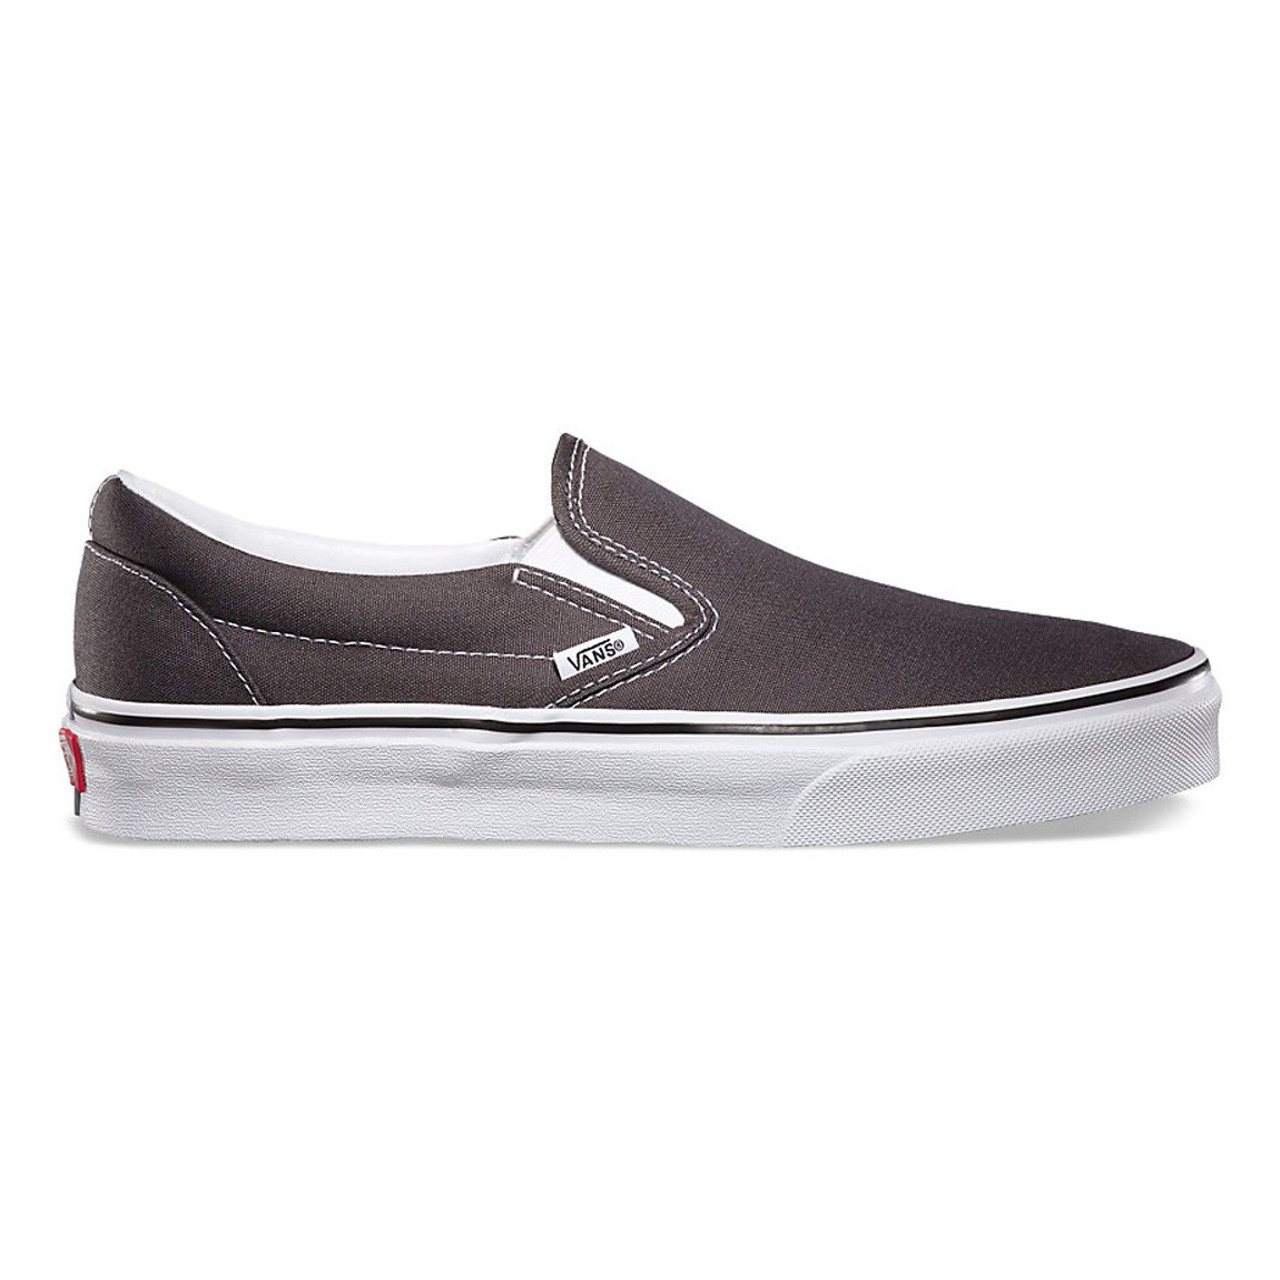 407144d63519ea Vans Shoes - Classic Slip-On - Canvas Charcoal - Surf and Dirt